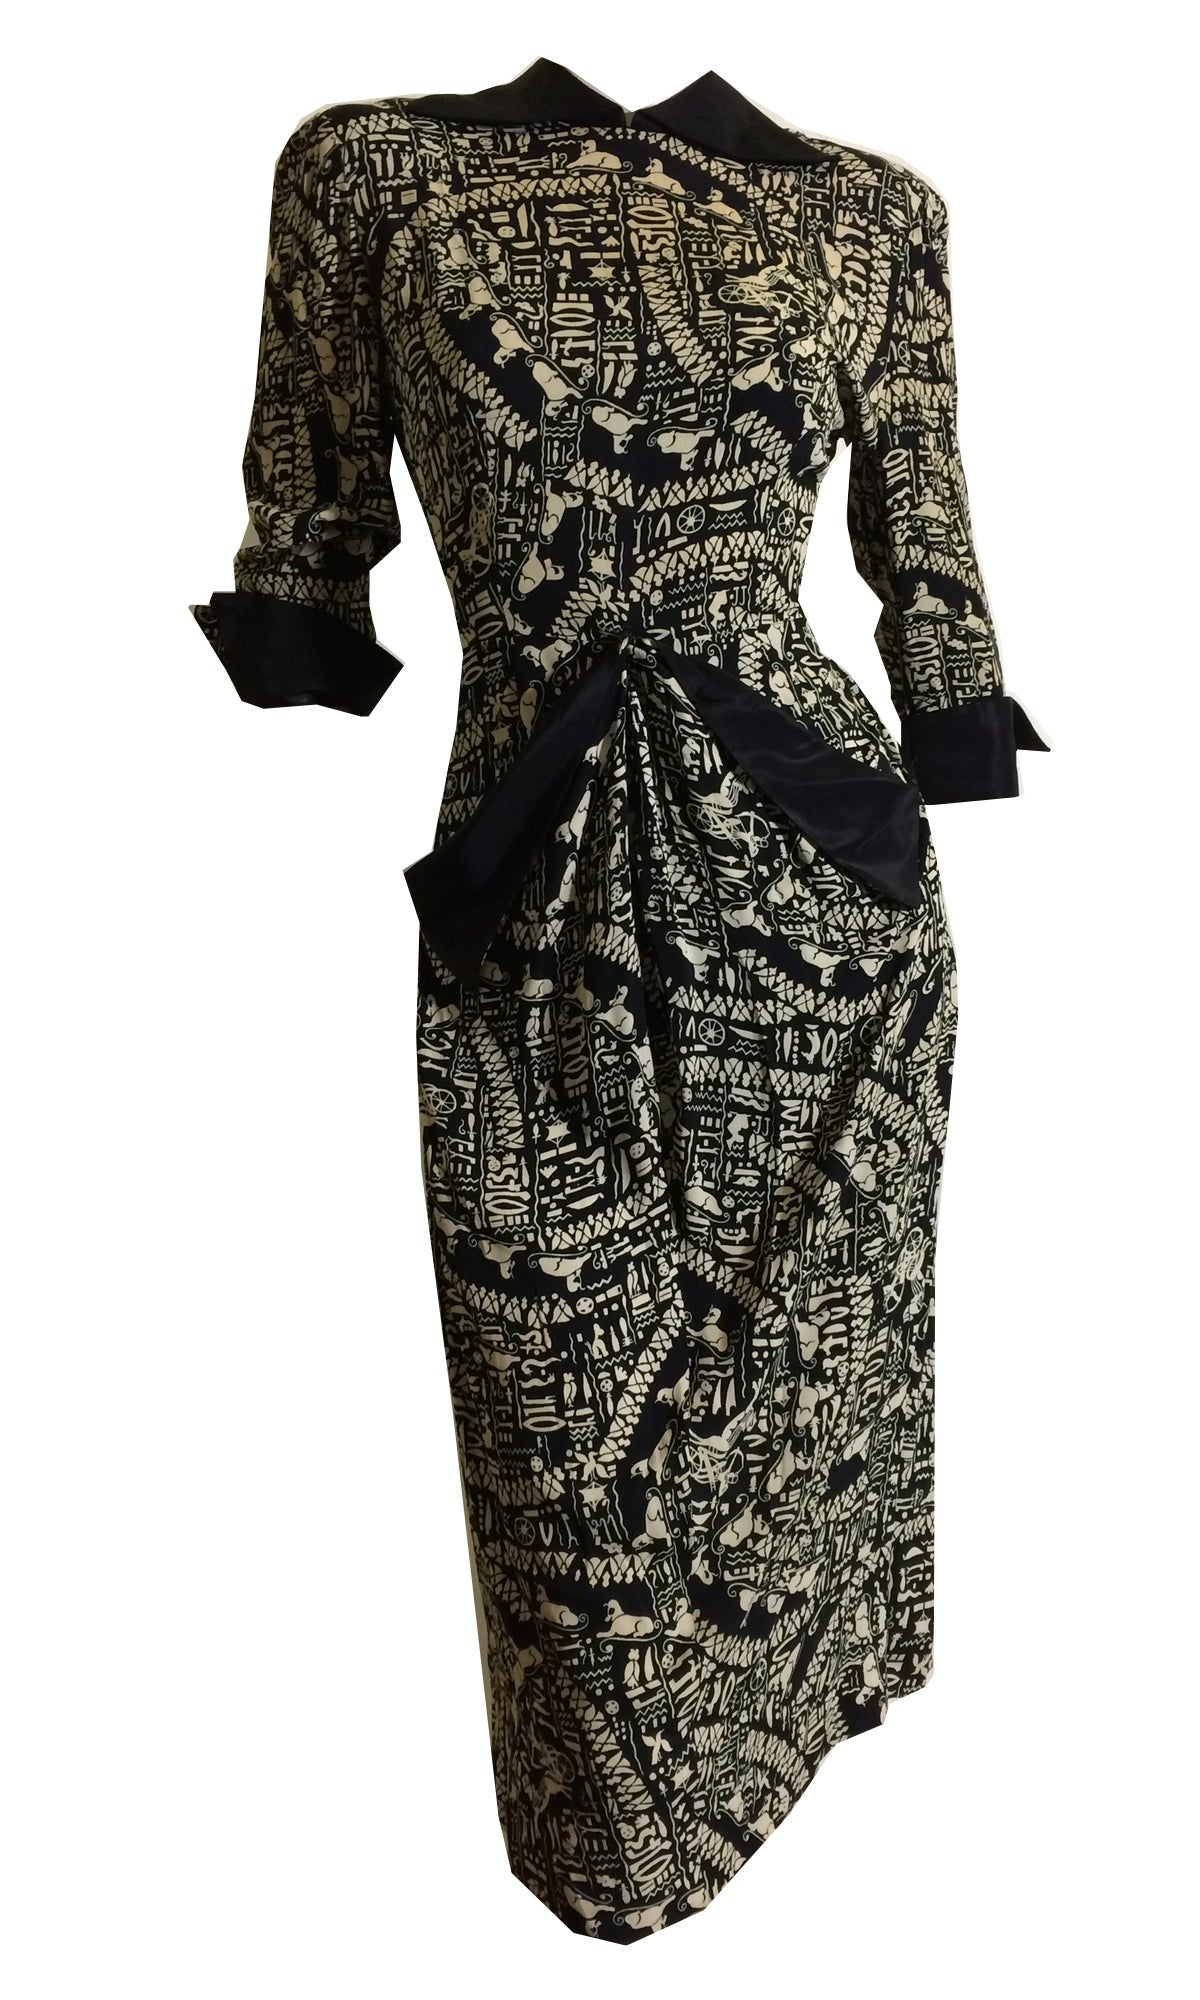 Egyptian Novelty Print Black and Ivory Crepe Rayon Dress circa 1940s